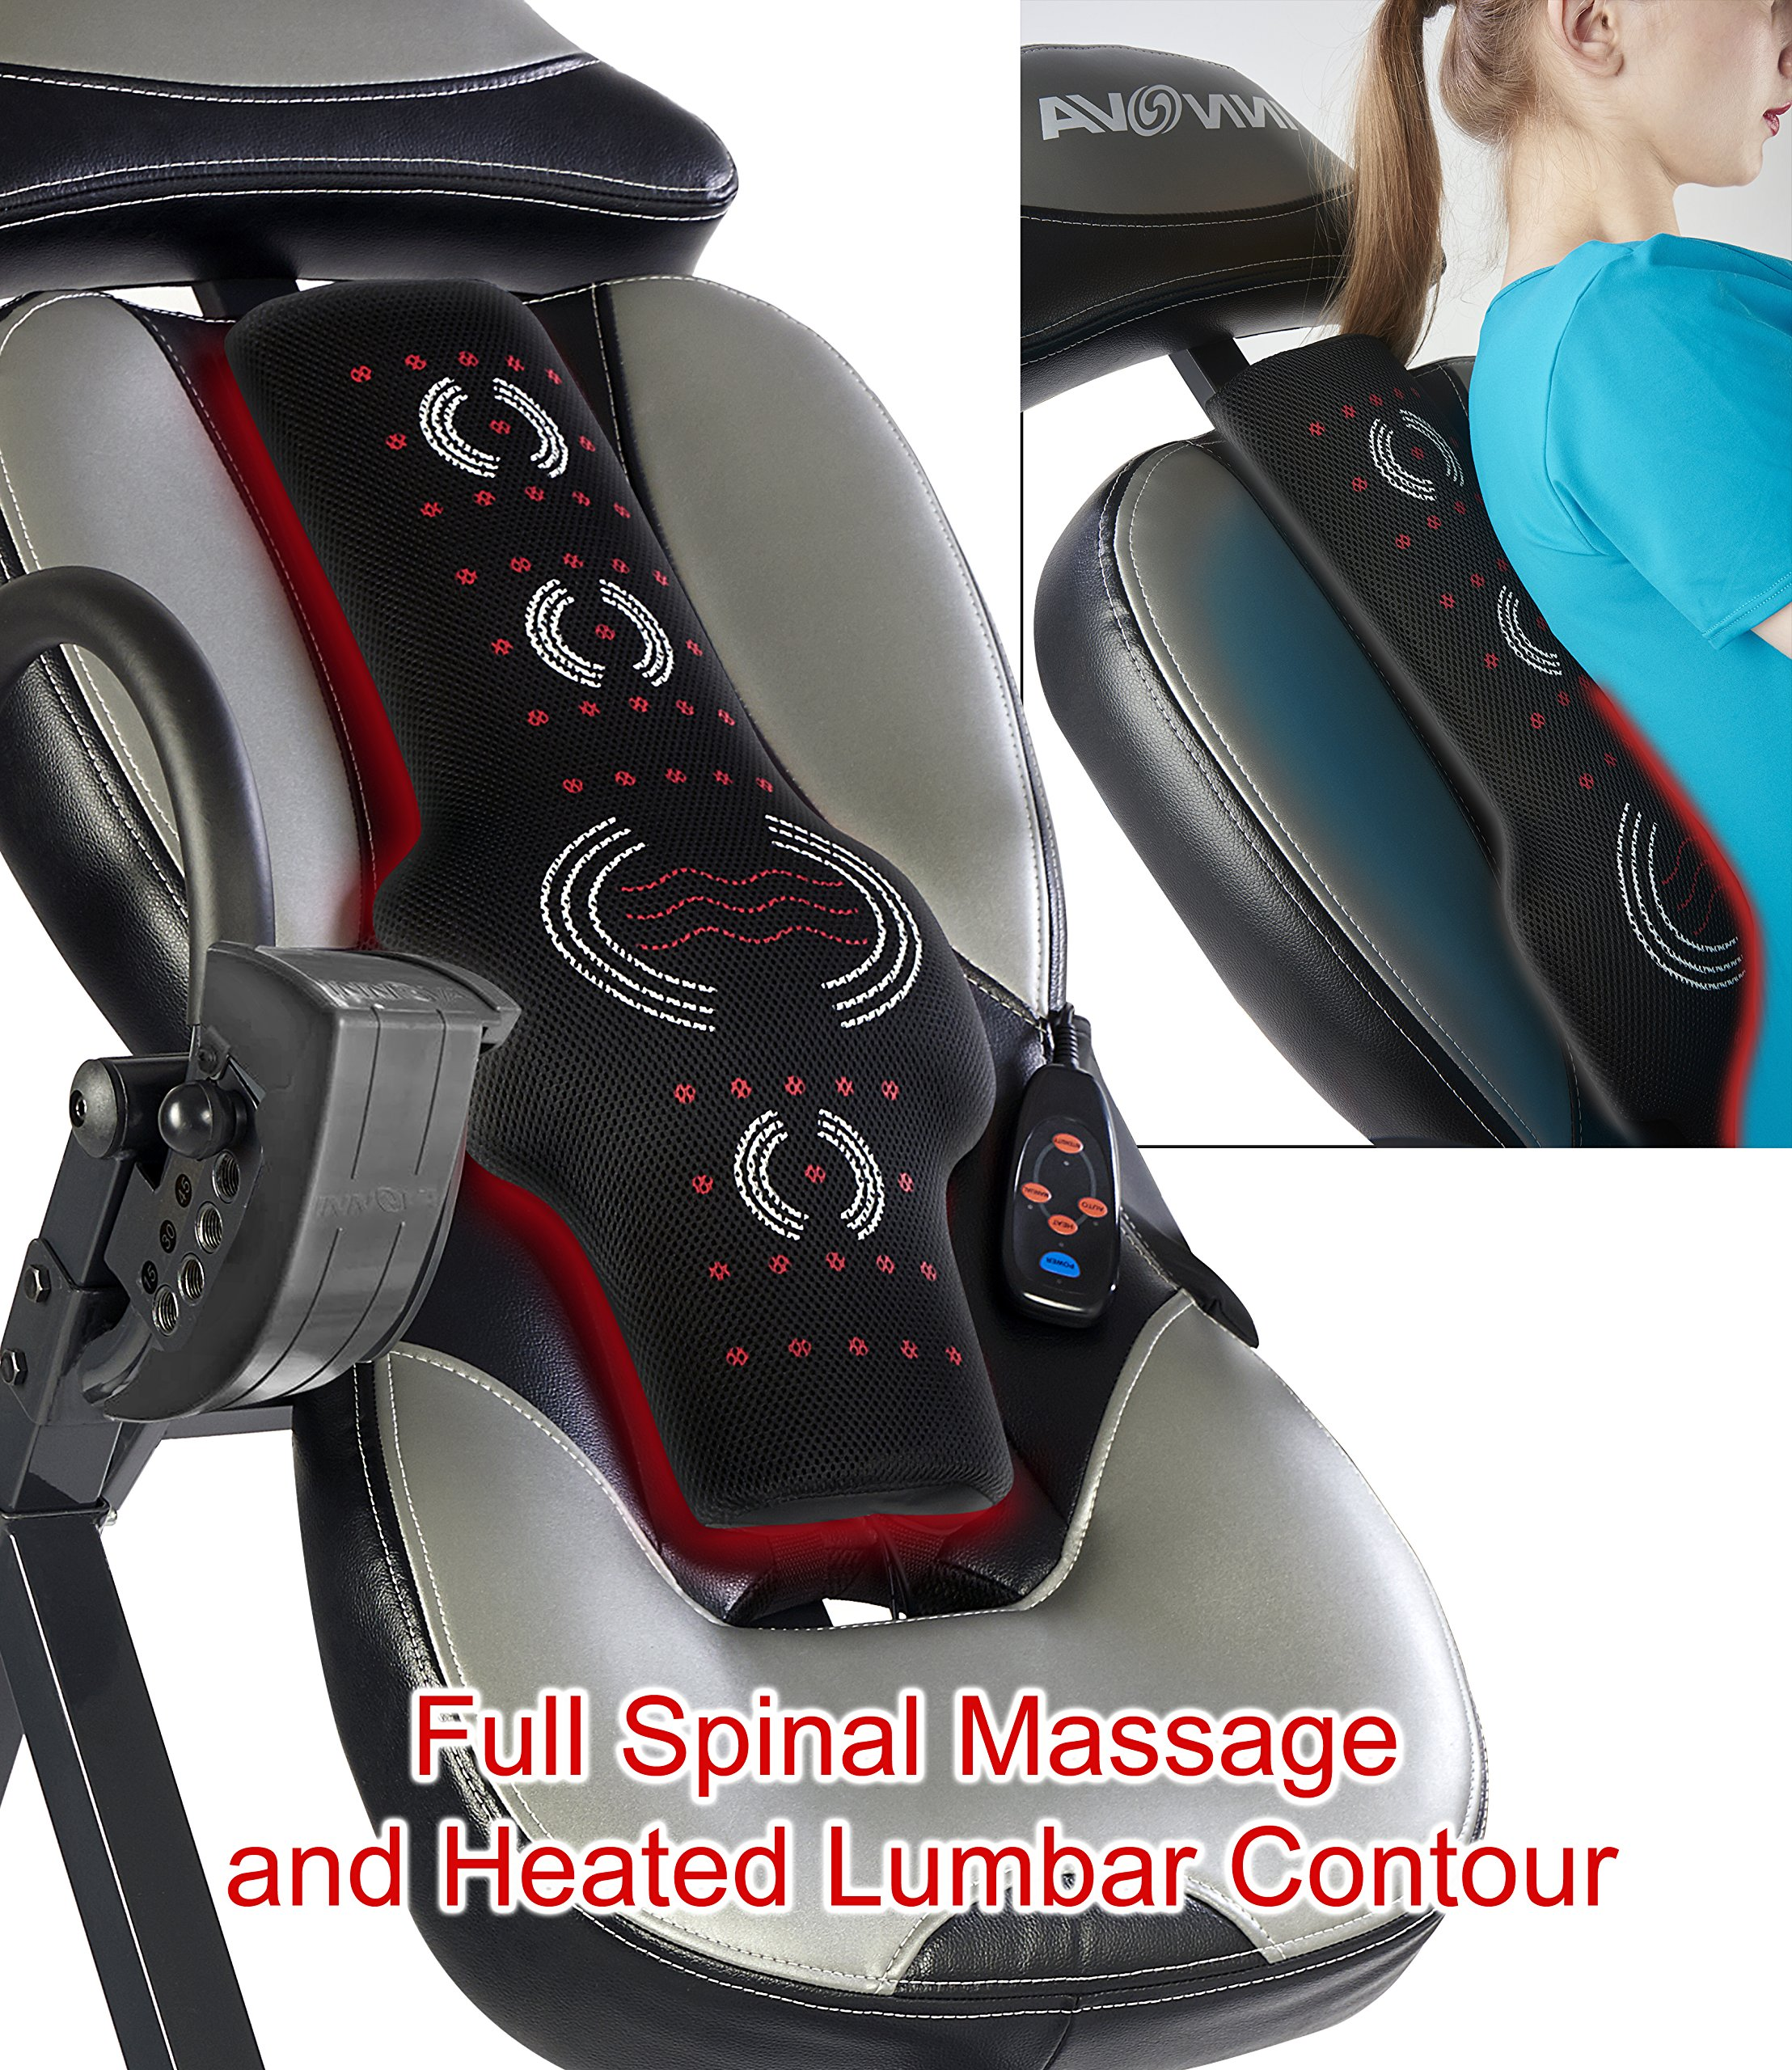 Innova ITM5900 Advanced Heat and Massage Inversion Therapy Table by Innova Health and Fitness (Image #3)